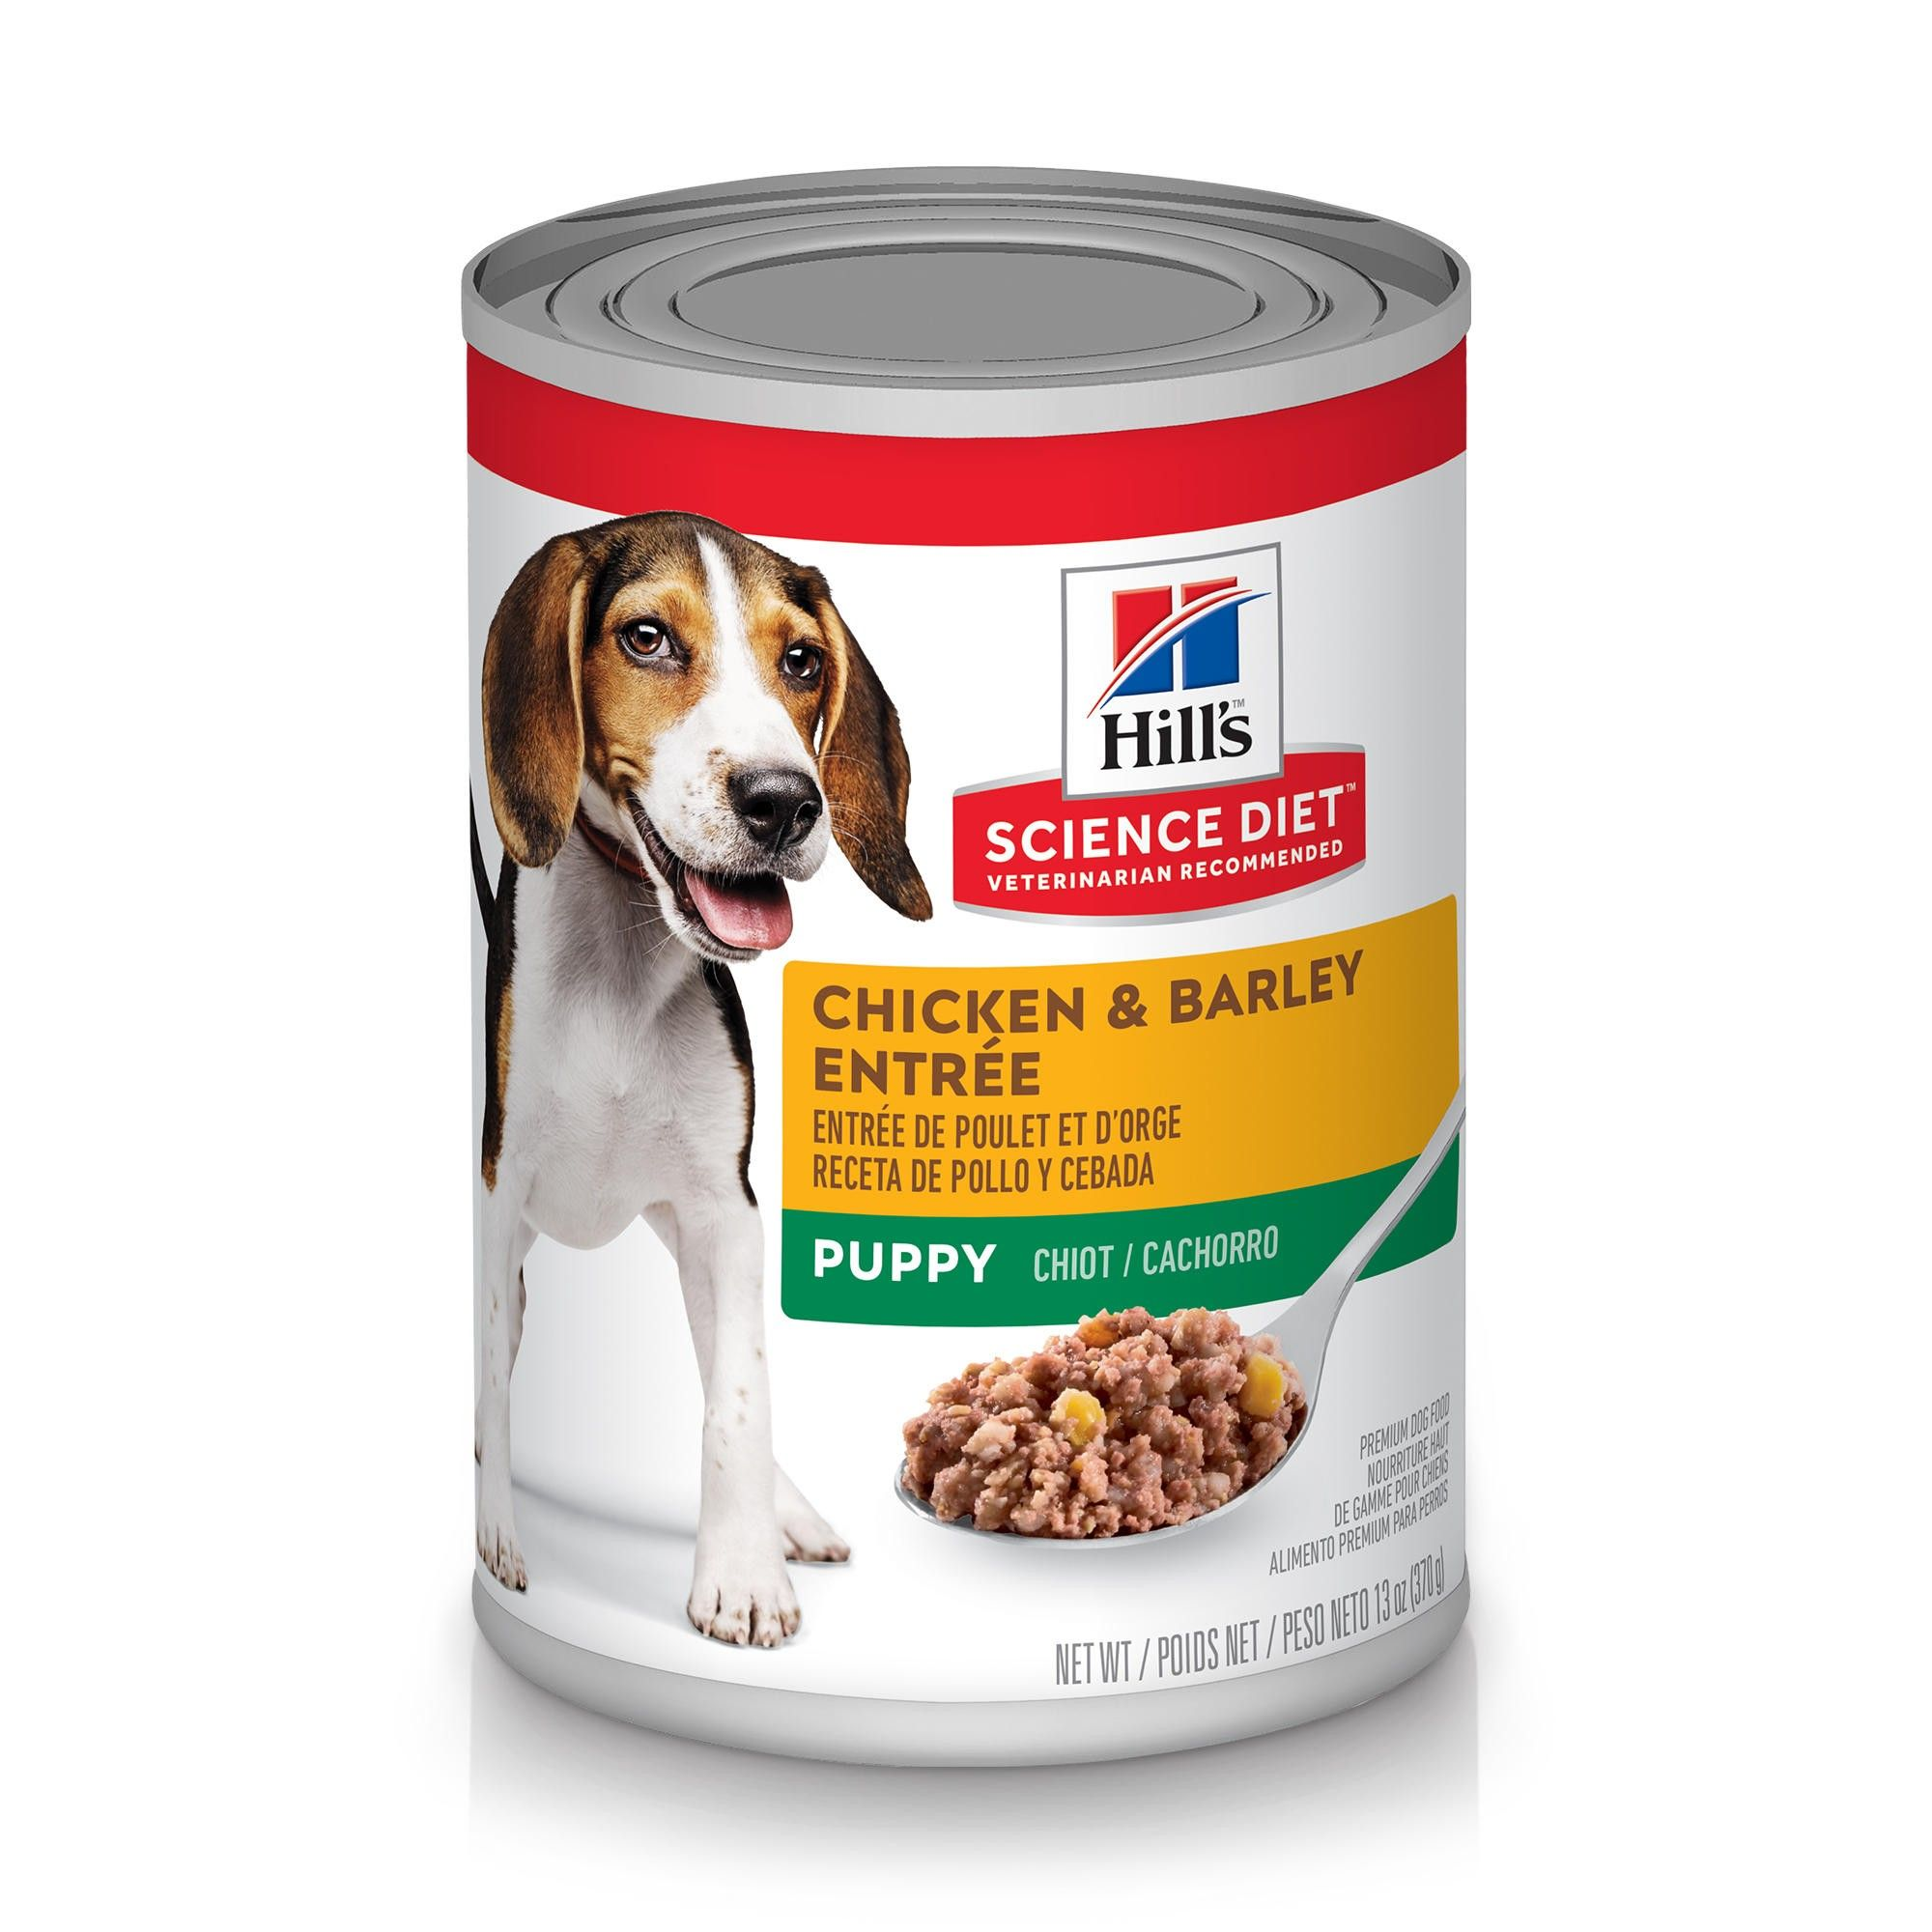 Hill's Science Diet Puppy Chicken & Barley Entree Canned Dog Food, 13-oz